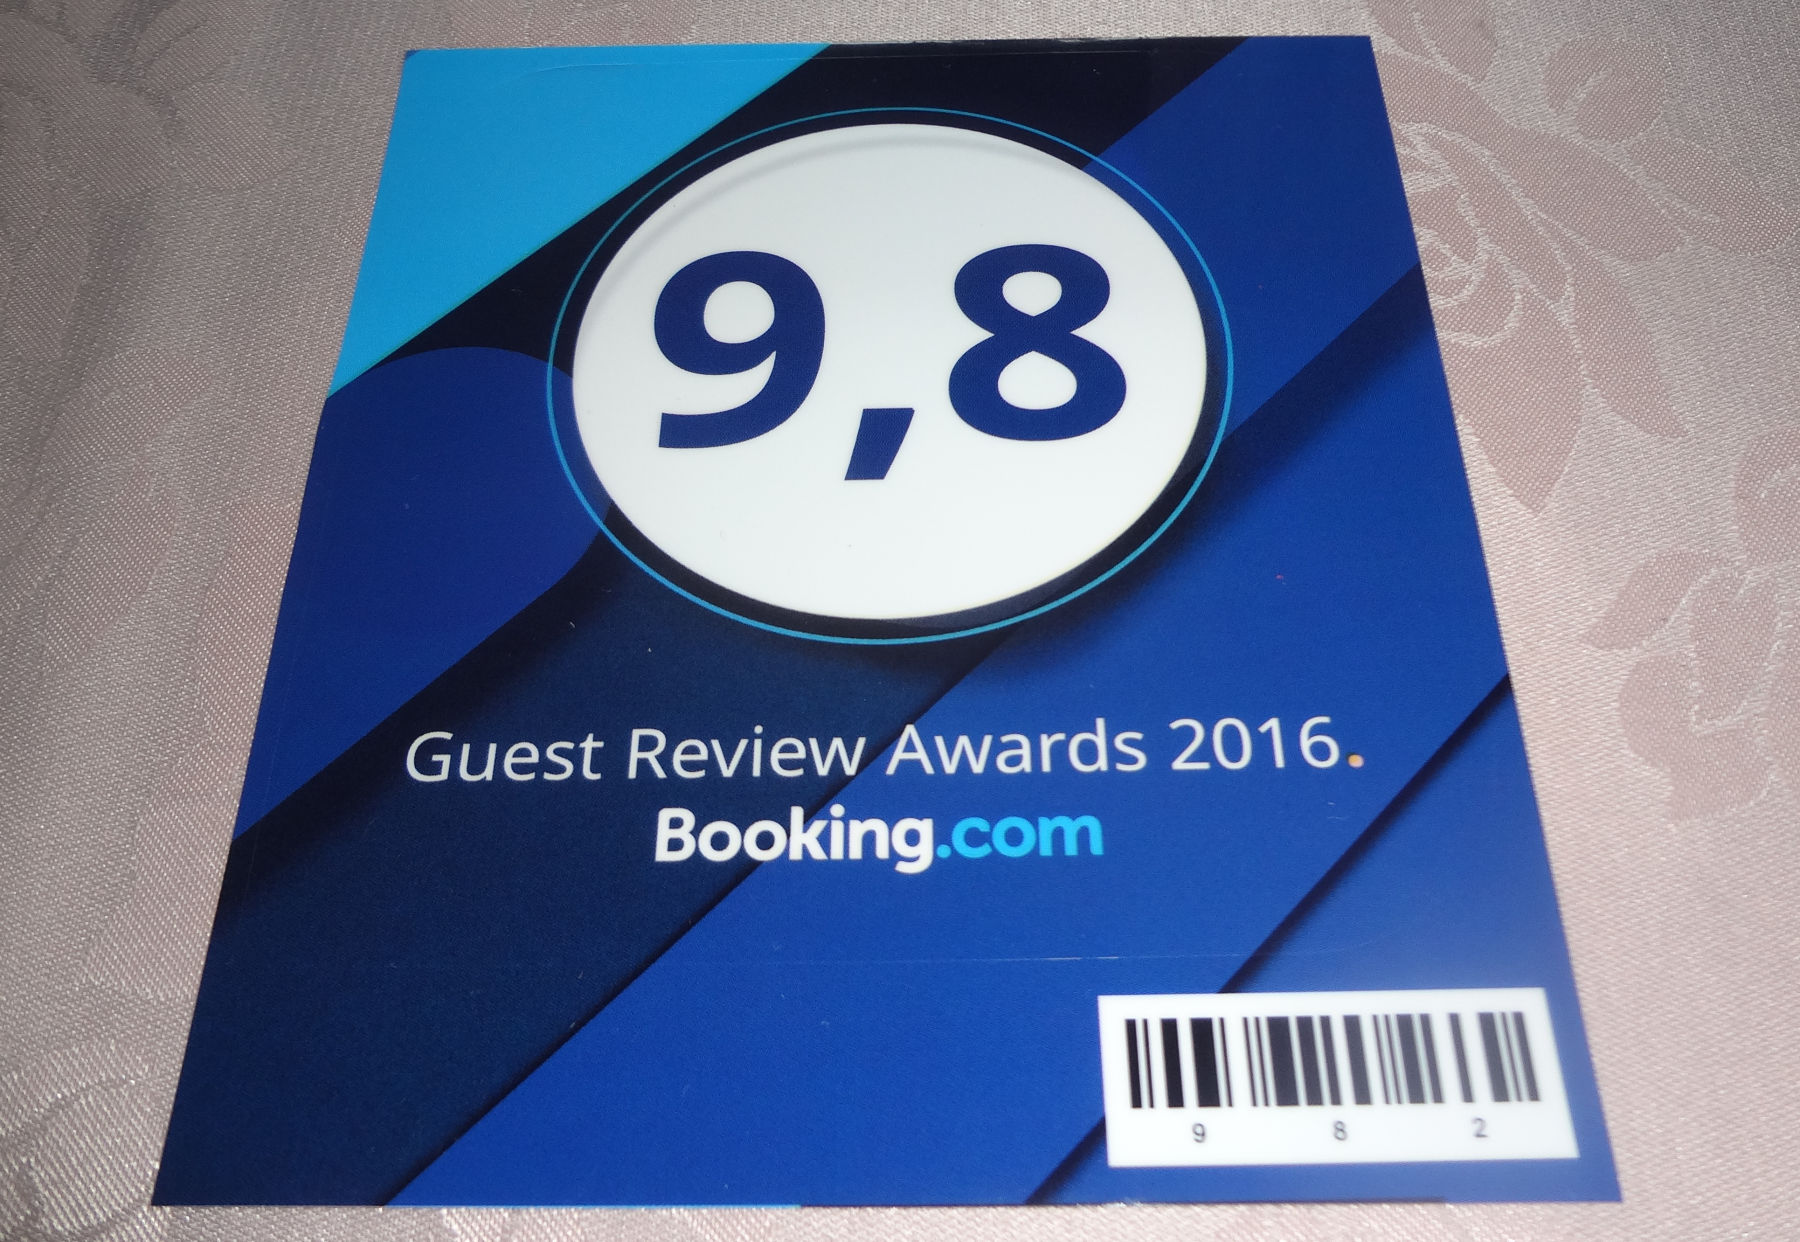 Guest Review Awards 2016 sticker from Booking